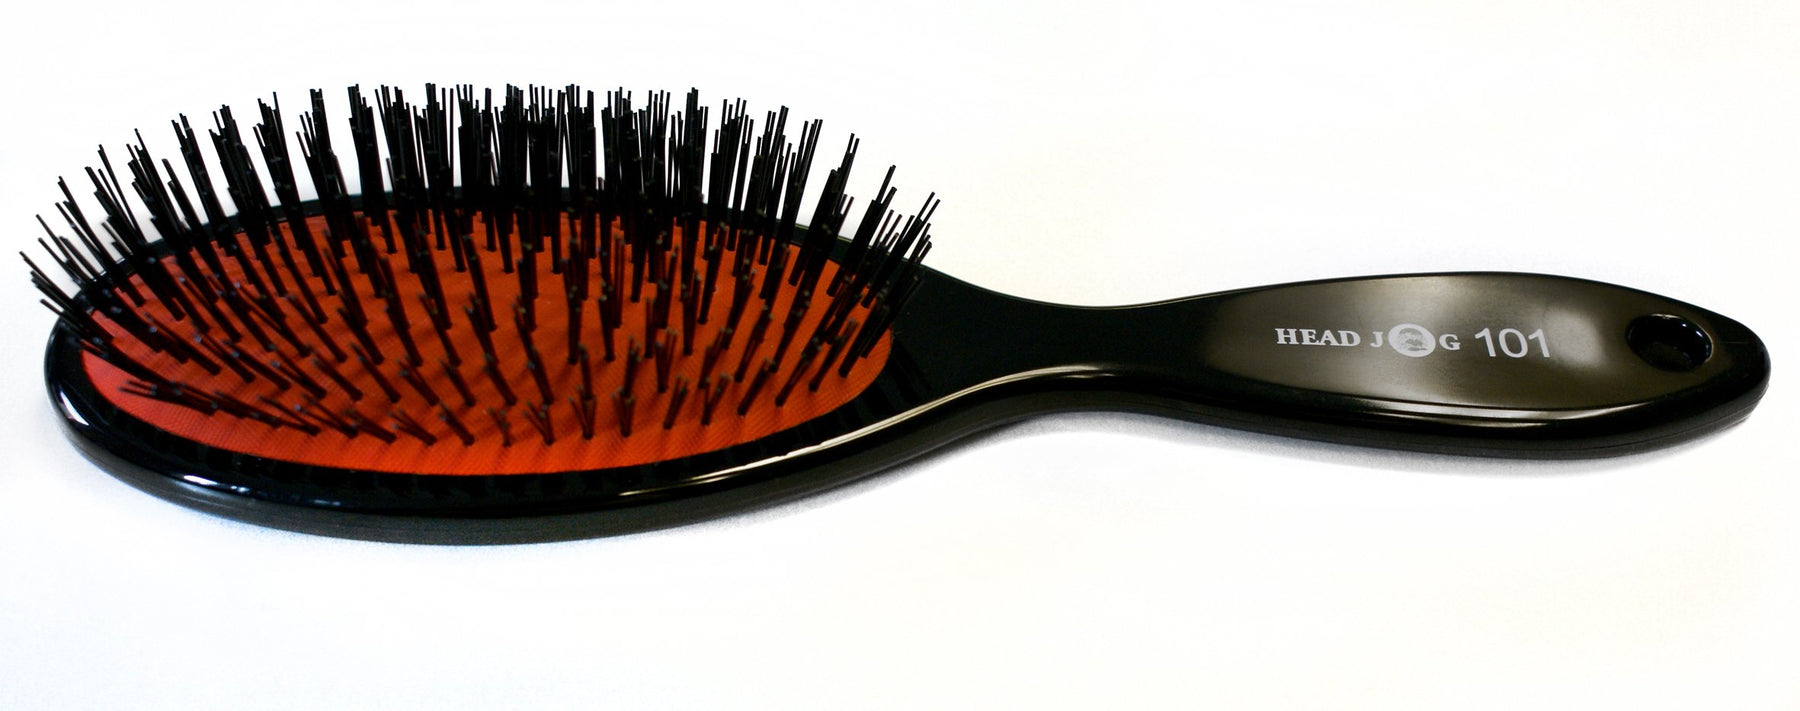 Head Jog 101 - Nylon Bristles Brush